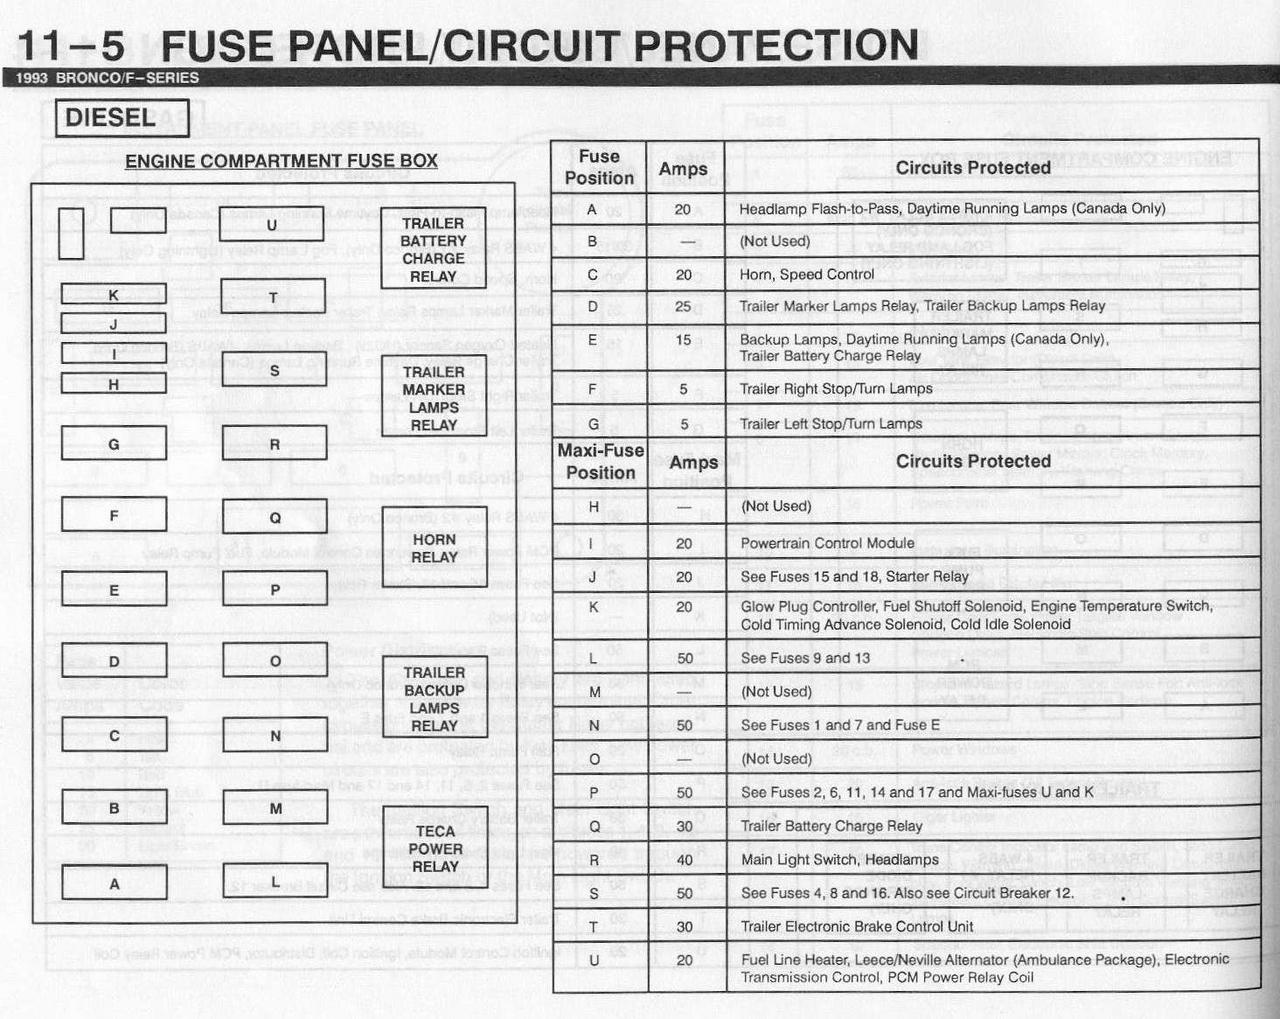 1992 Ford Bronco Wiring Diagram